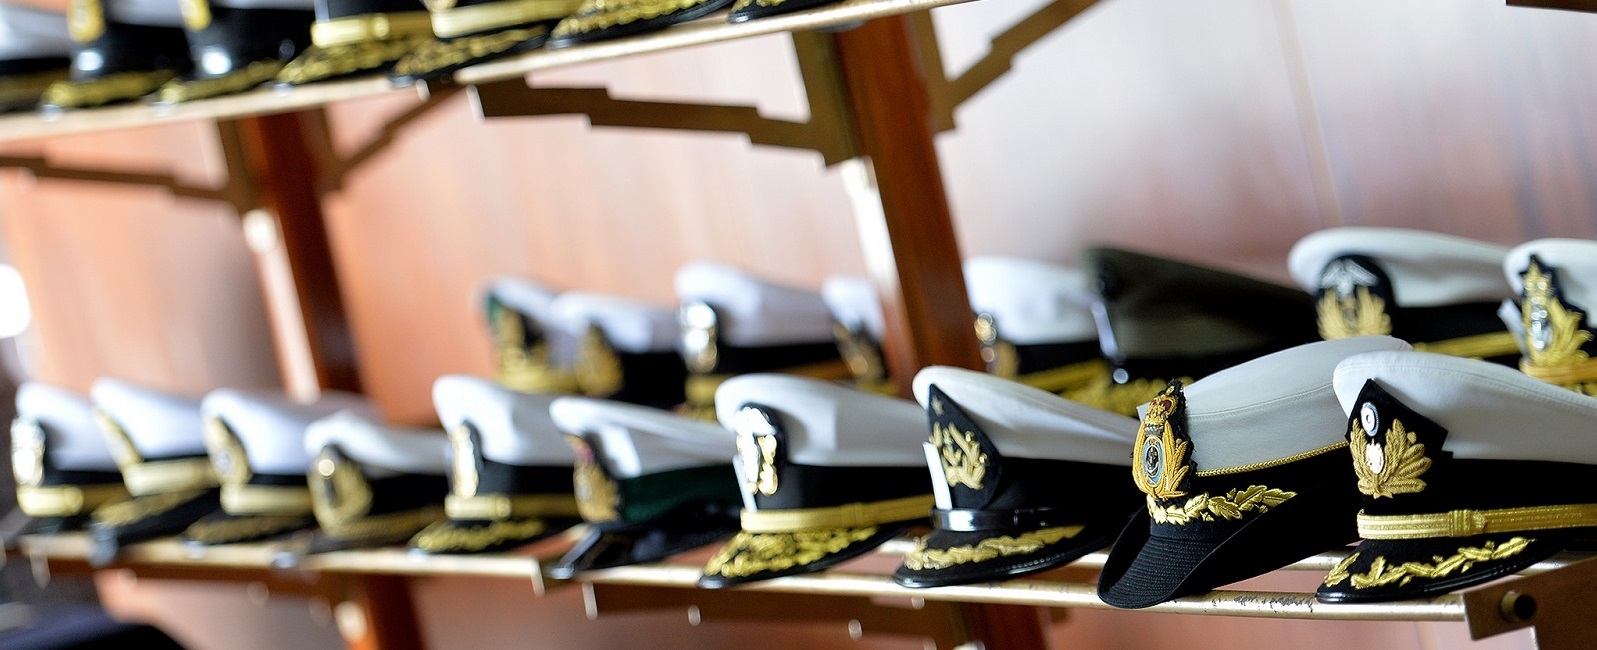 Combination covers representative of several international navies and coast guards sit on display at NWC's 14th Regional Alumni Symposium held at the Peruvian Naval Academy in LaPunta-Callao, Peru.